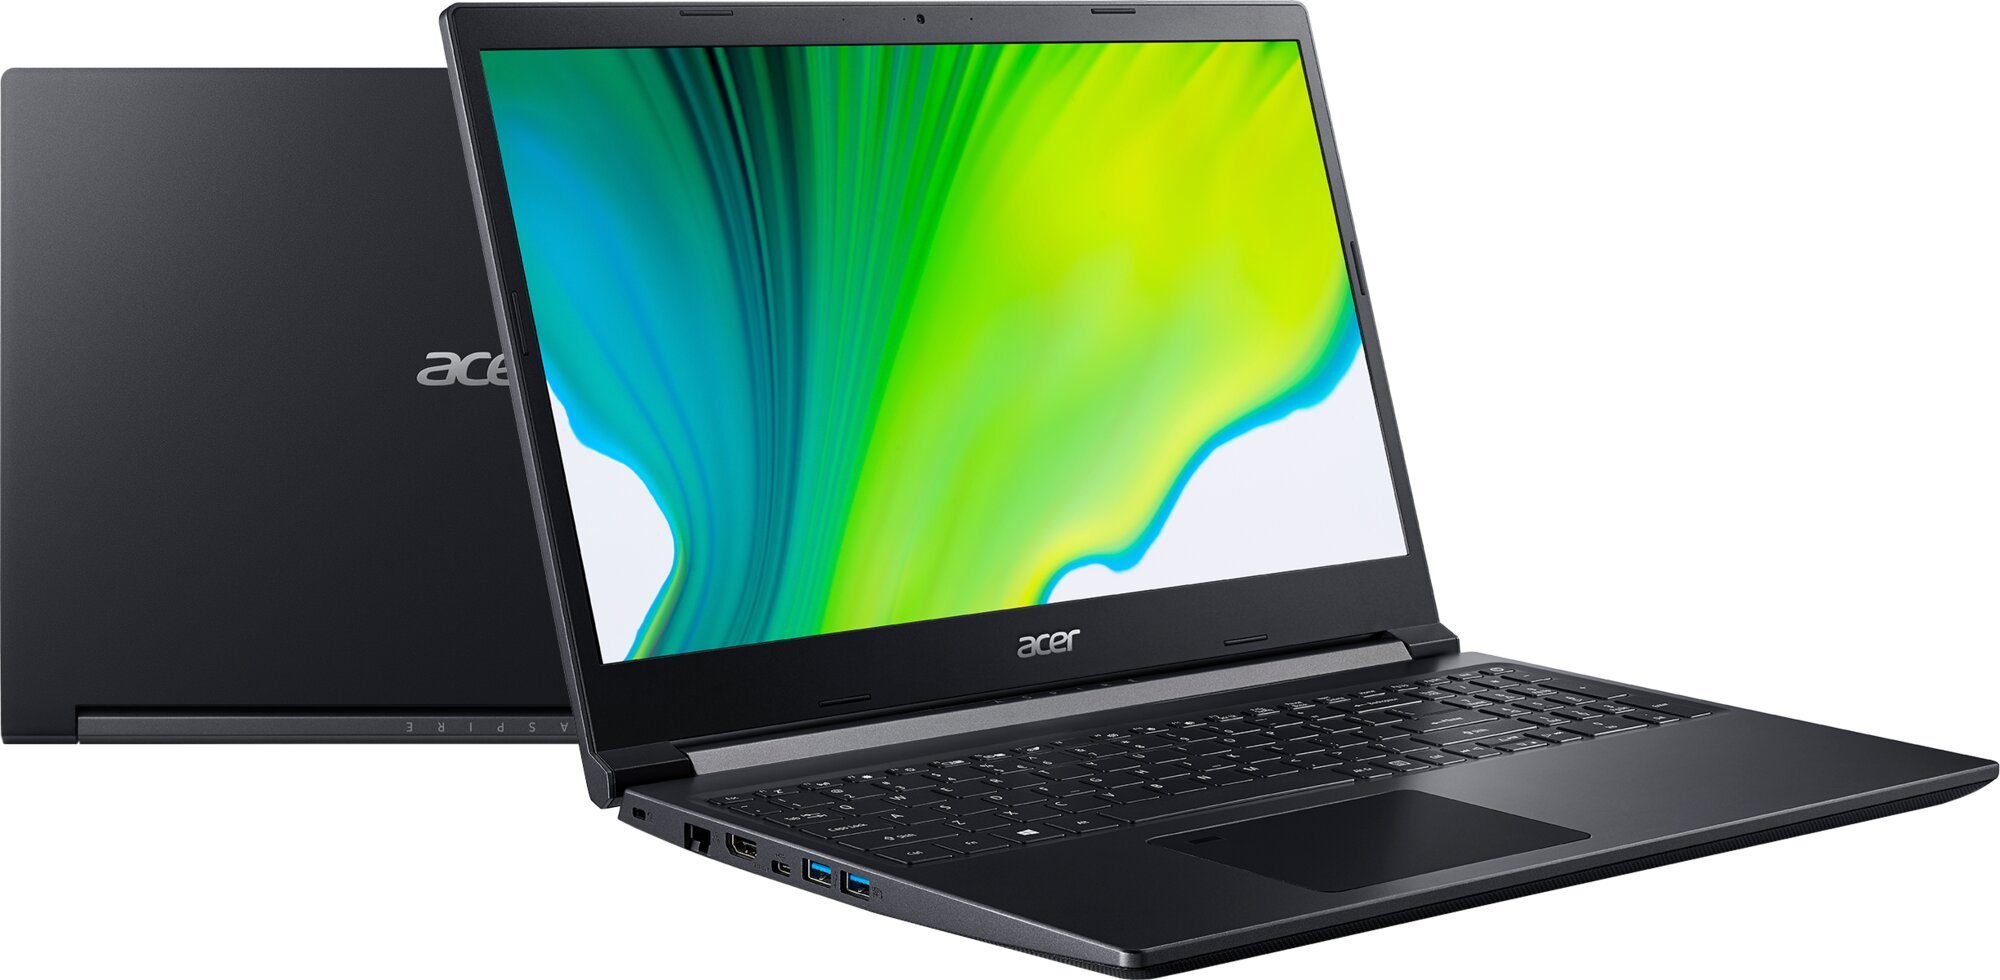 Acer Aspire 7 A715-75G-74QY